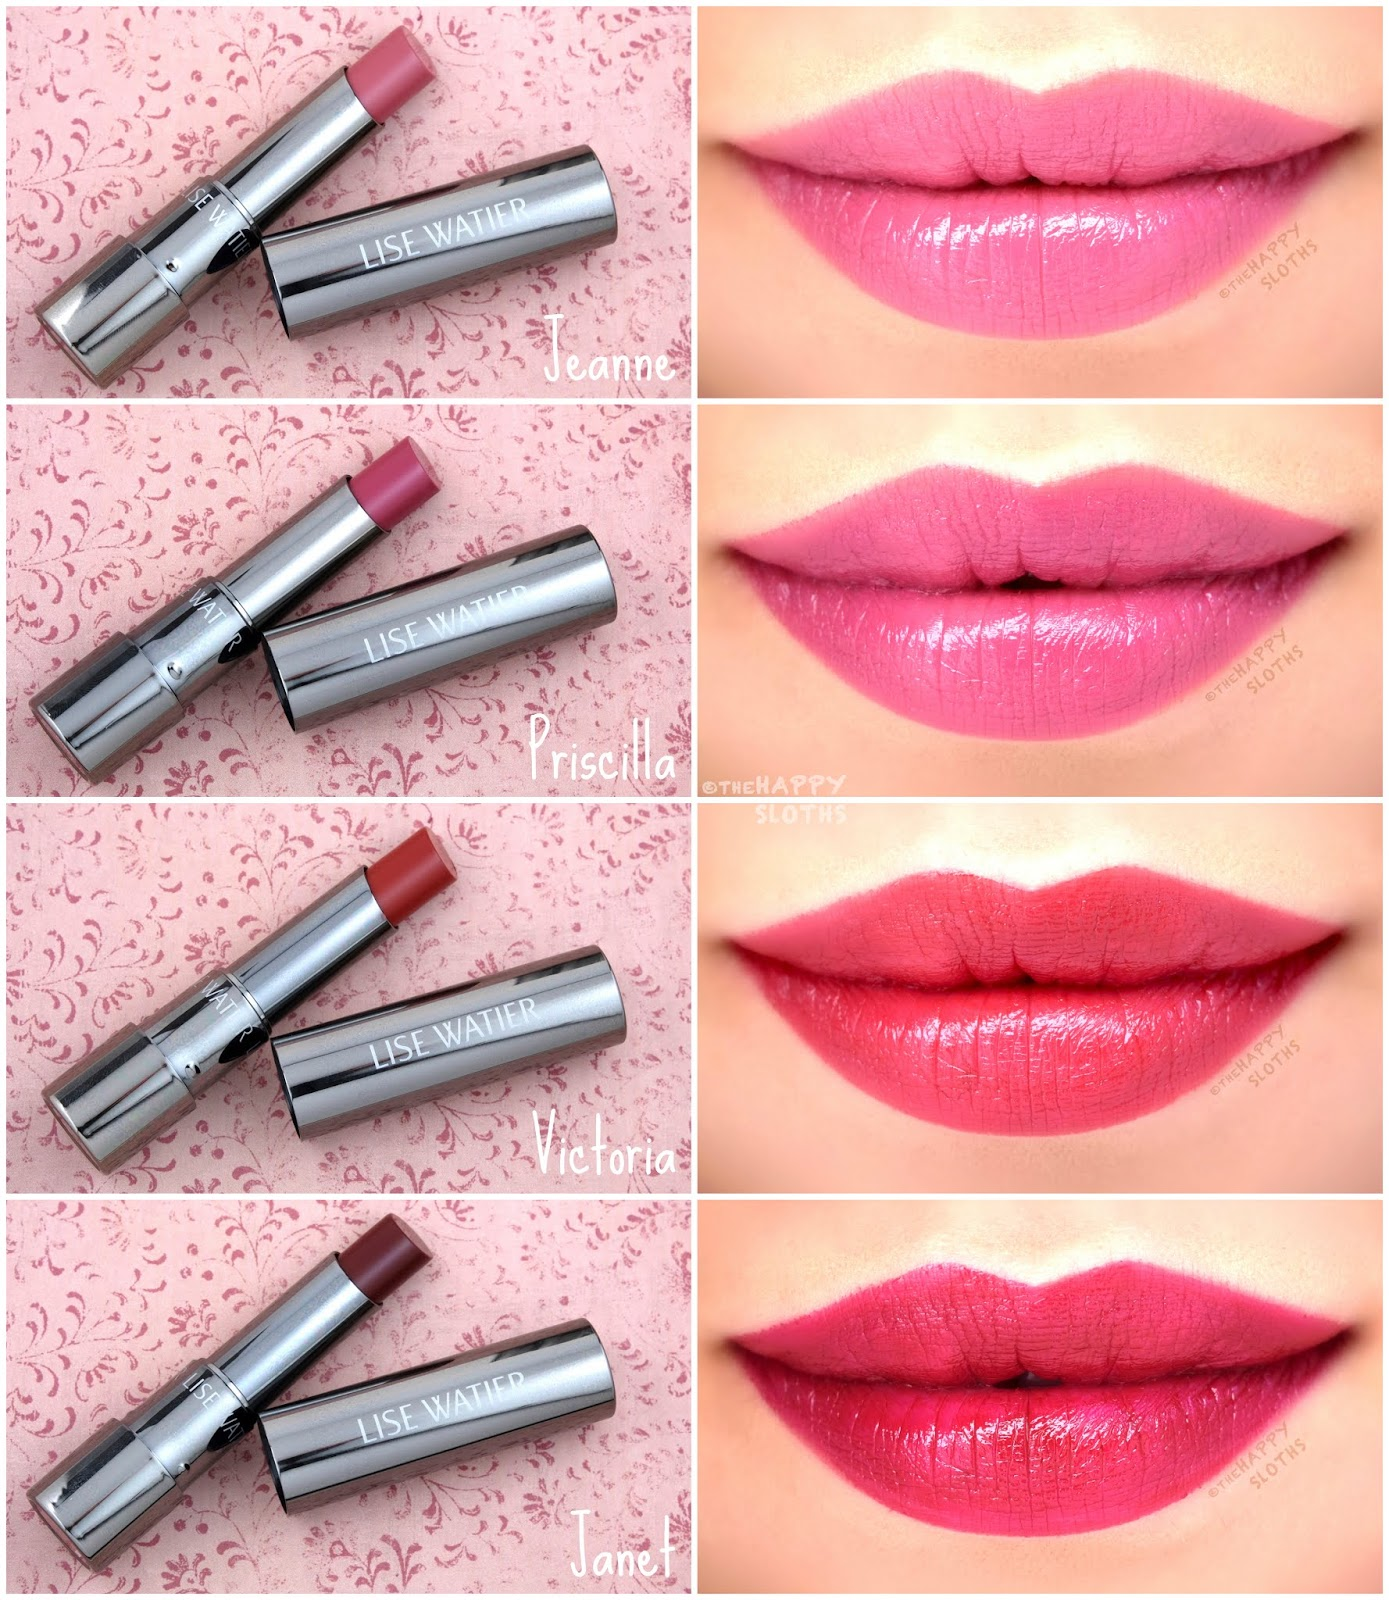 """Lise Watier 